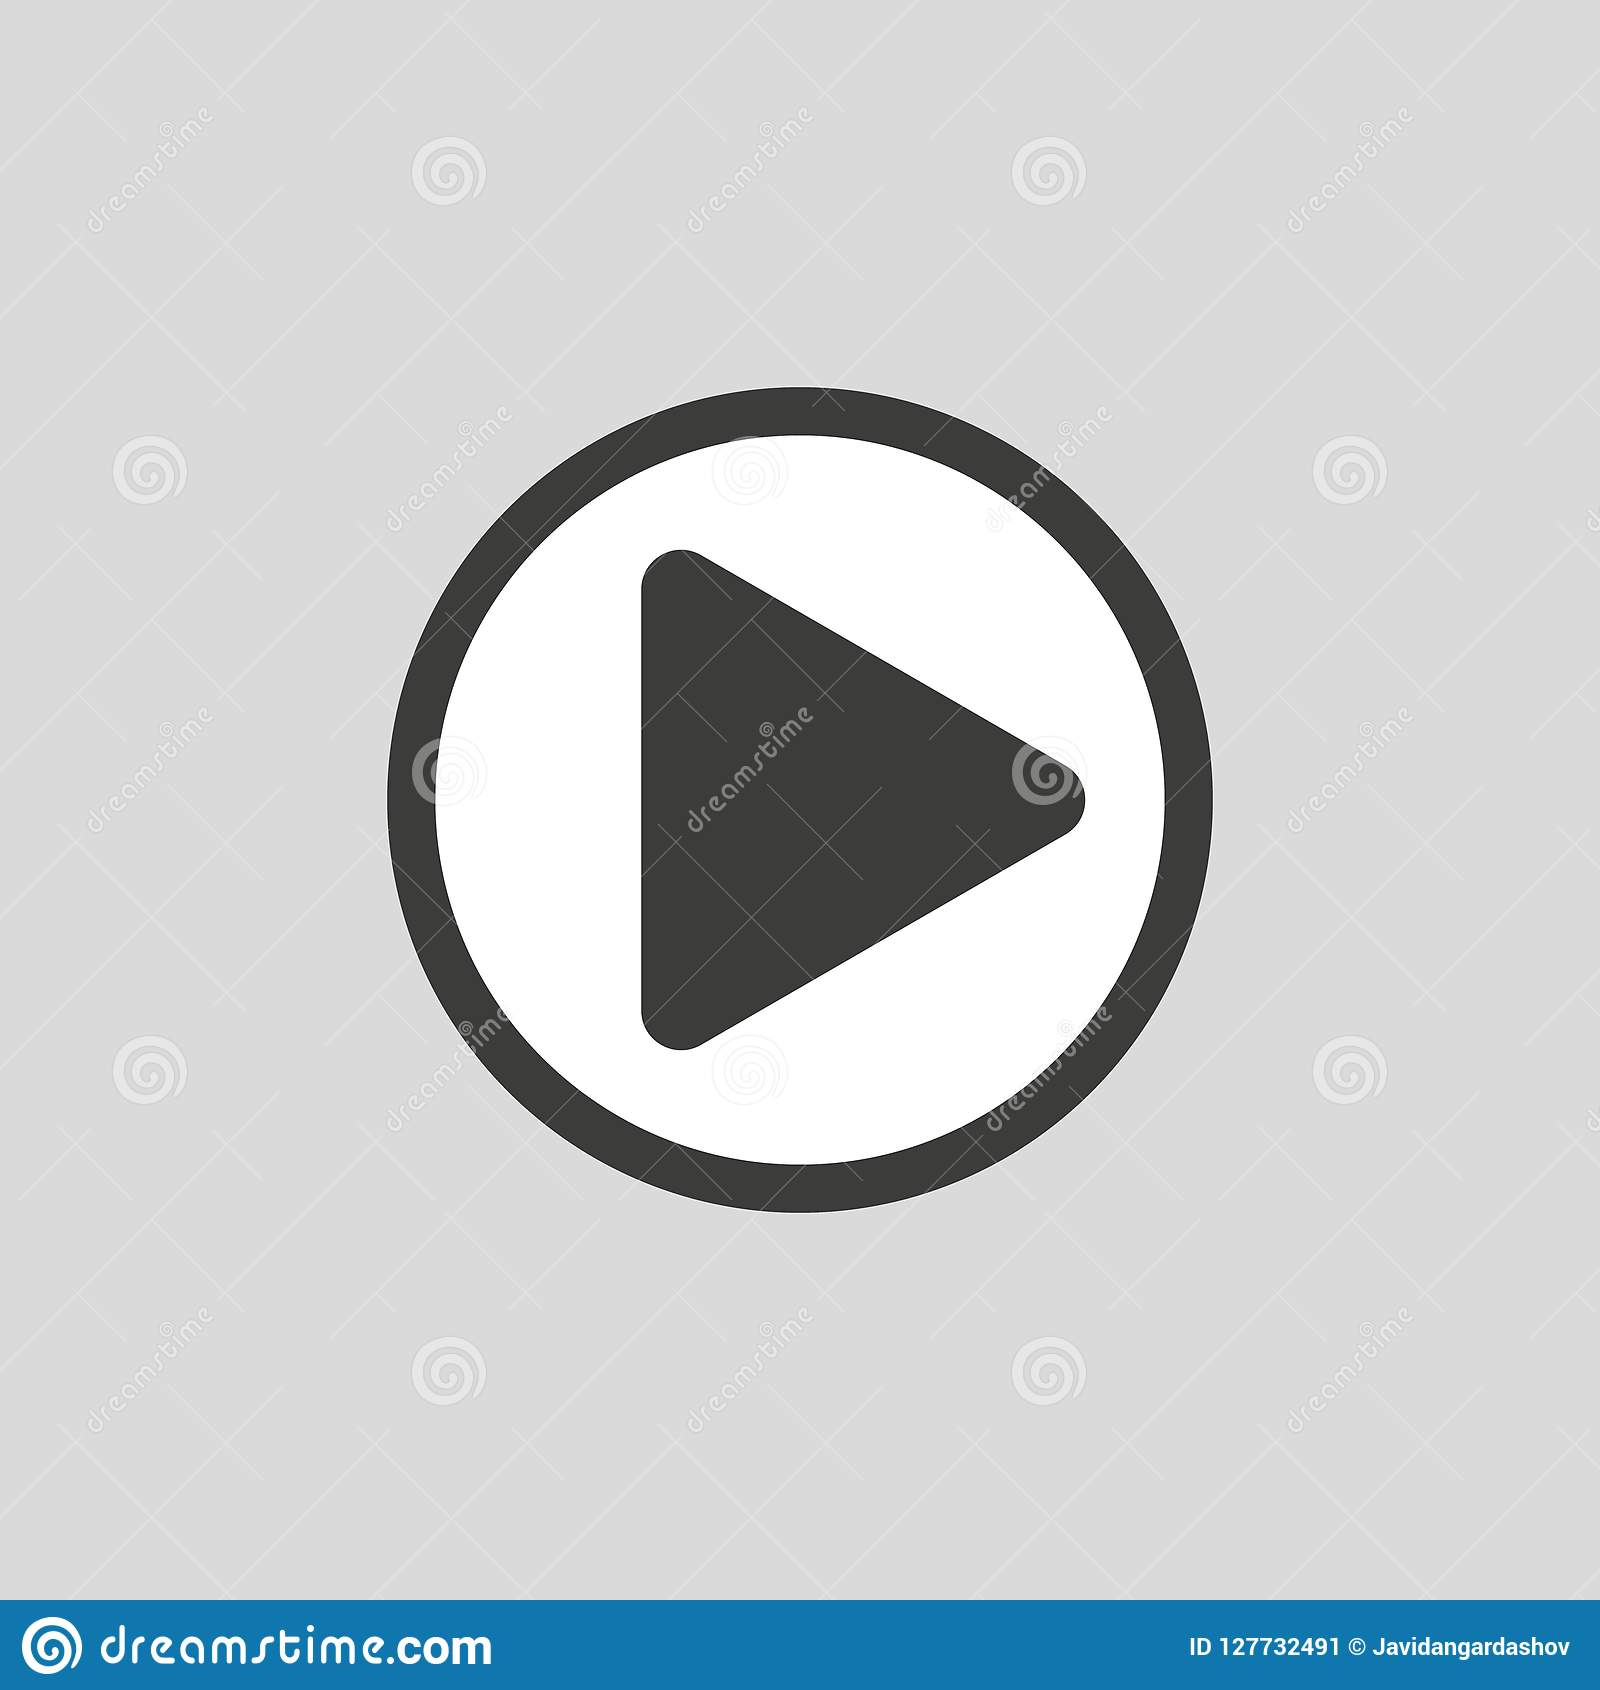 Chat Video Frame  Video Player For Web And Mobile Apps